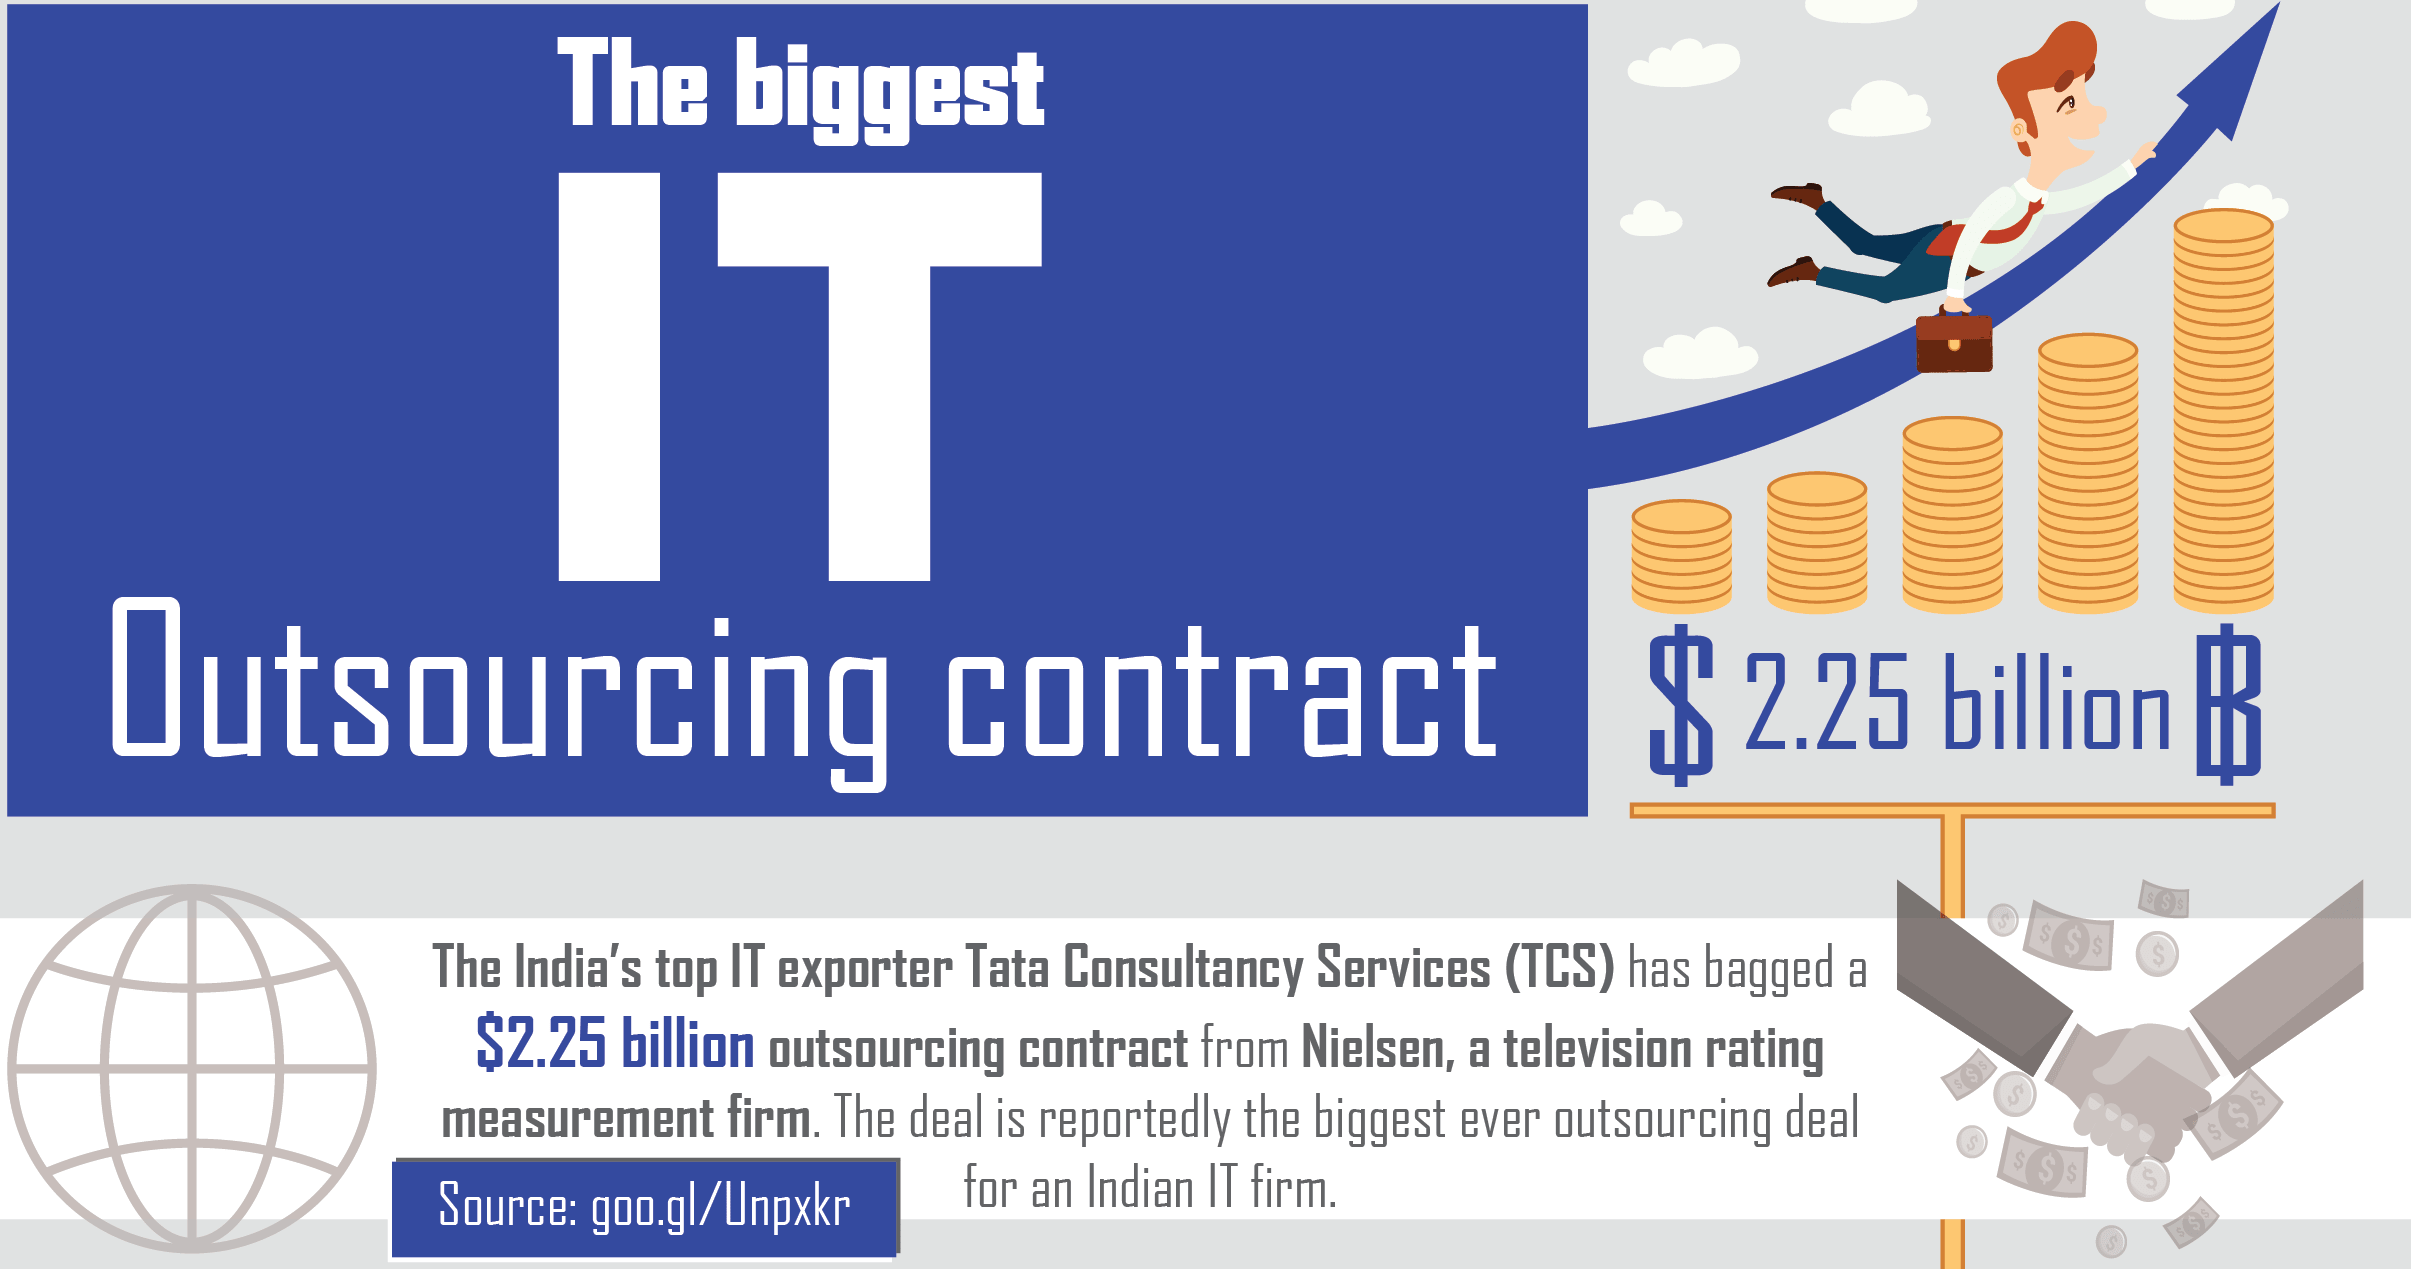 The biggest IT Outsourcing contract: $2.25 billion